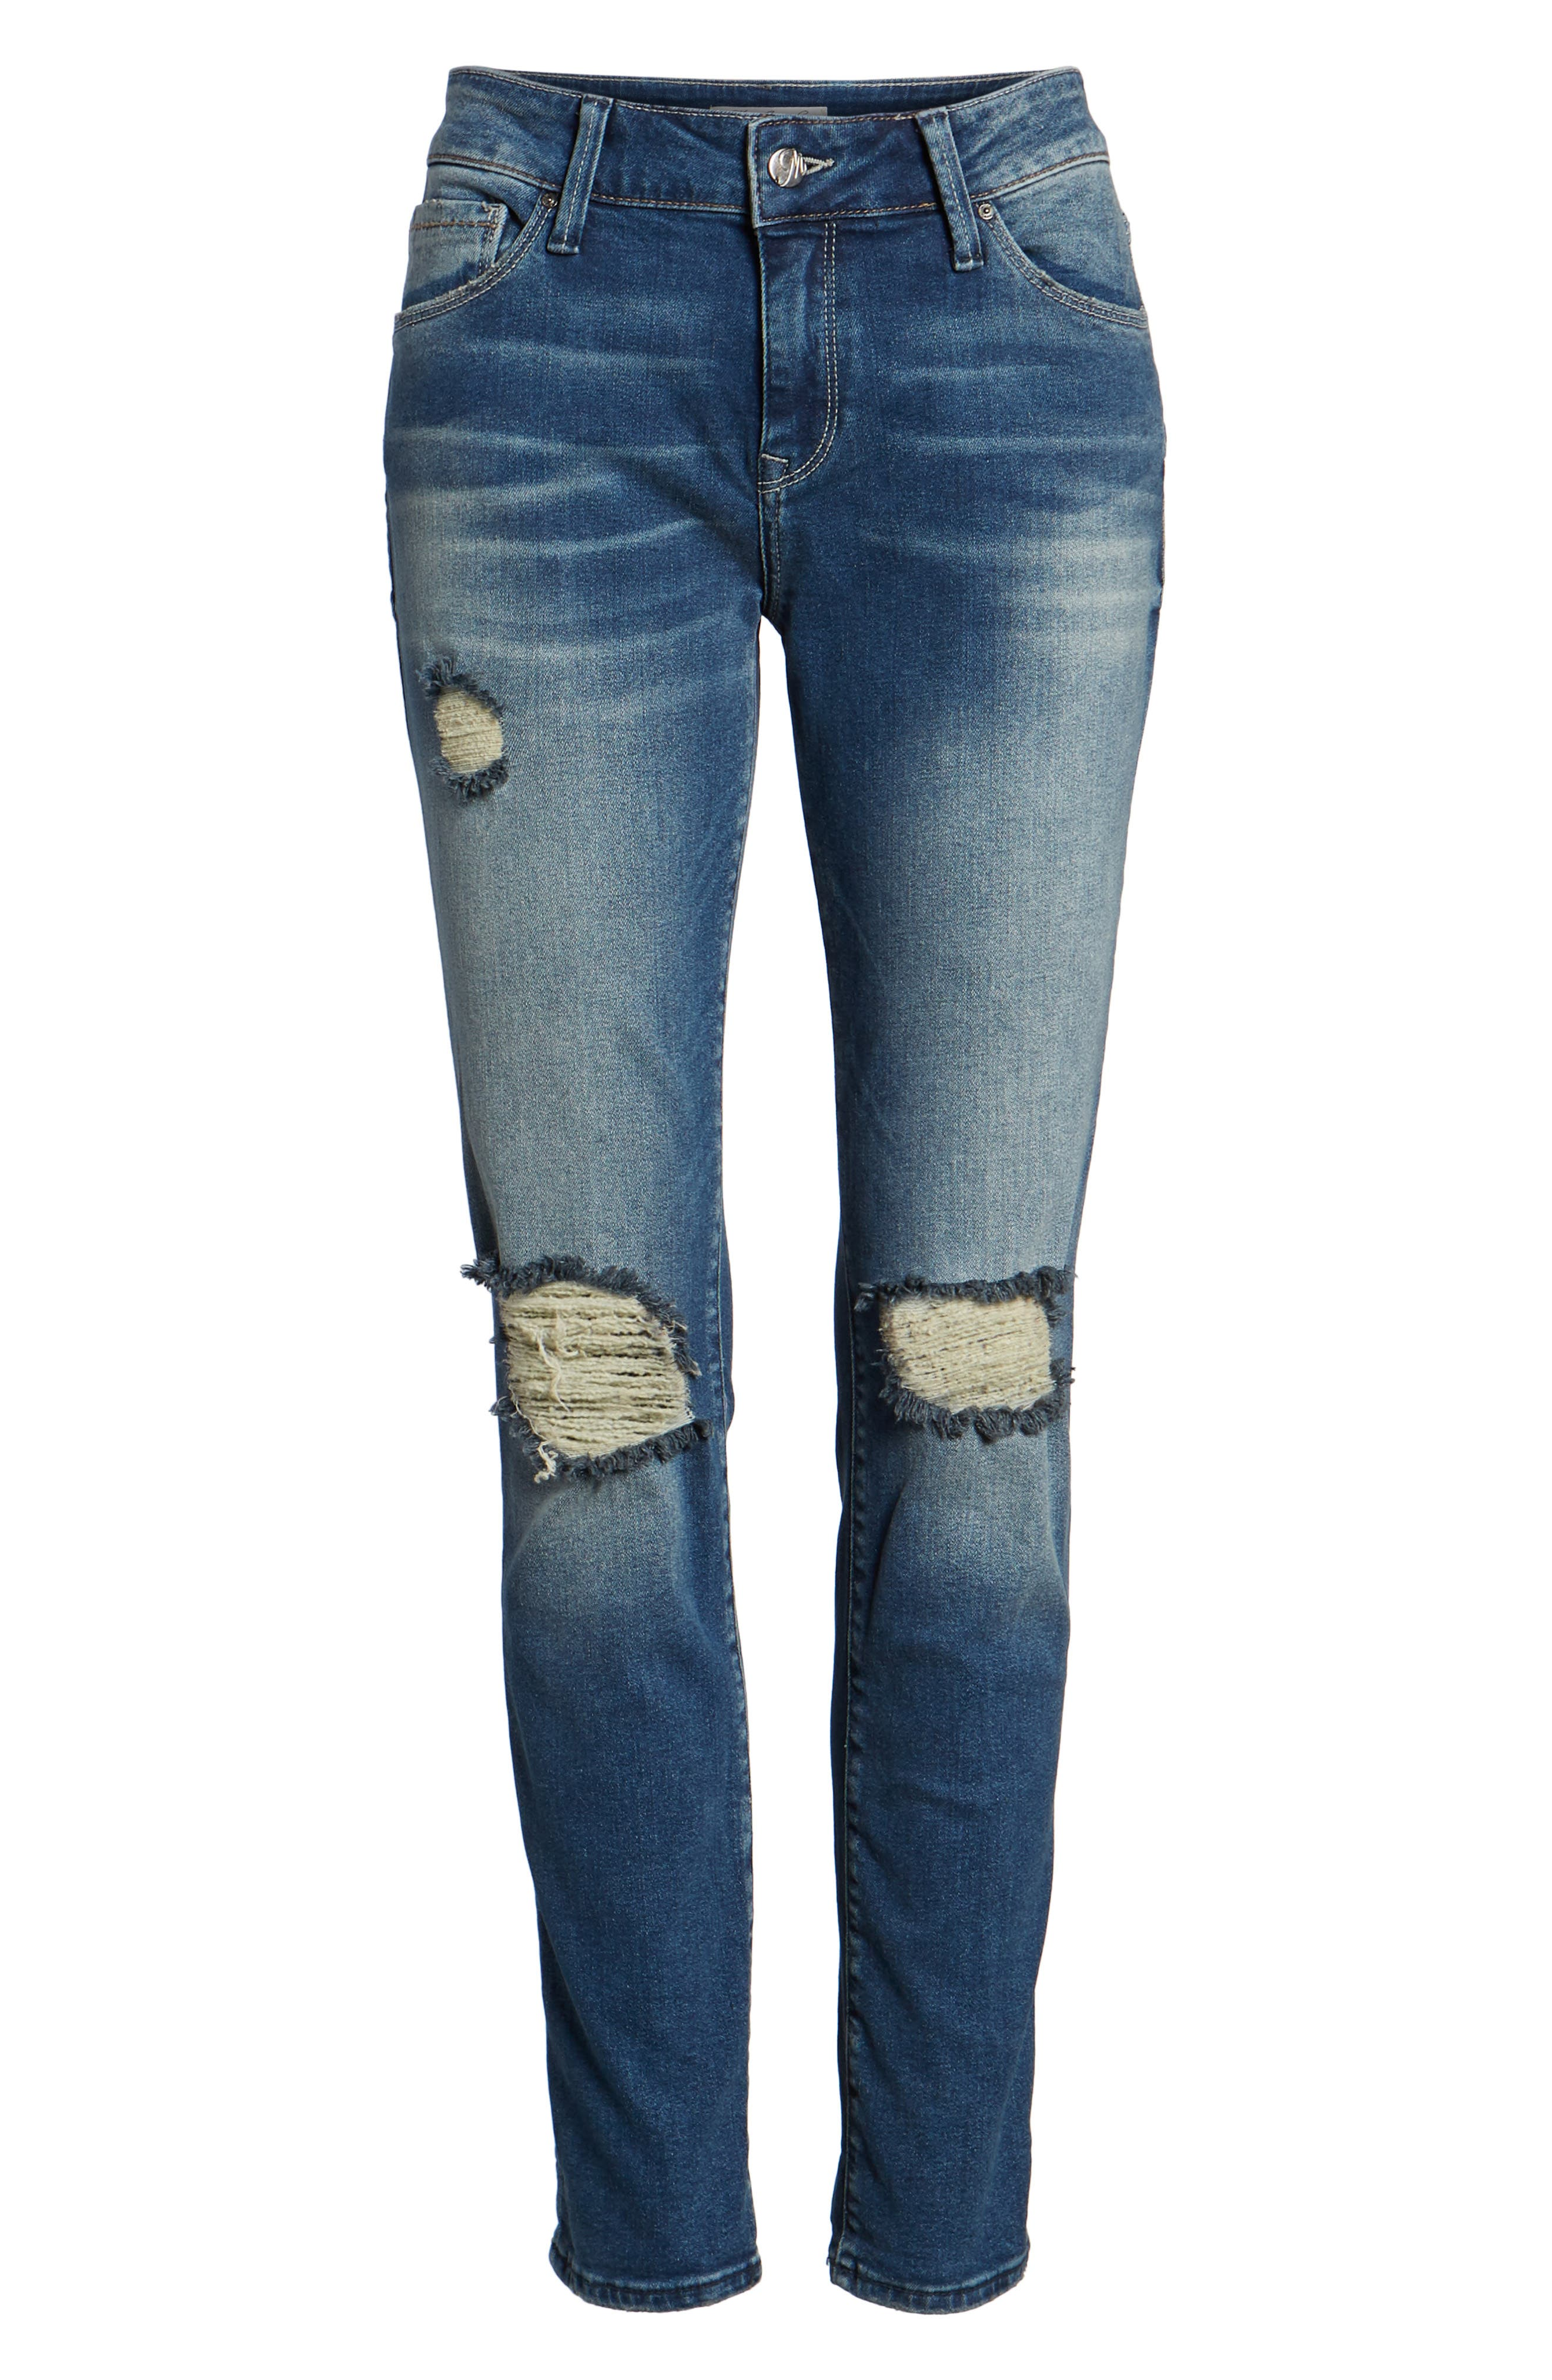 Ada Ripped Boyfriend Jeans,                             Alternate thumbnail 7, color,                             MID RIPPED VINTAGE